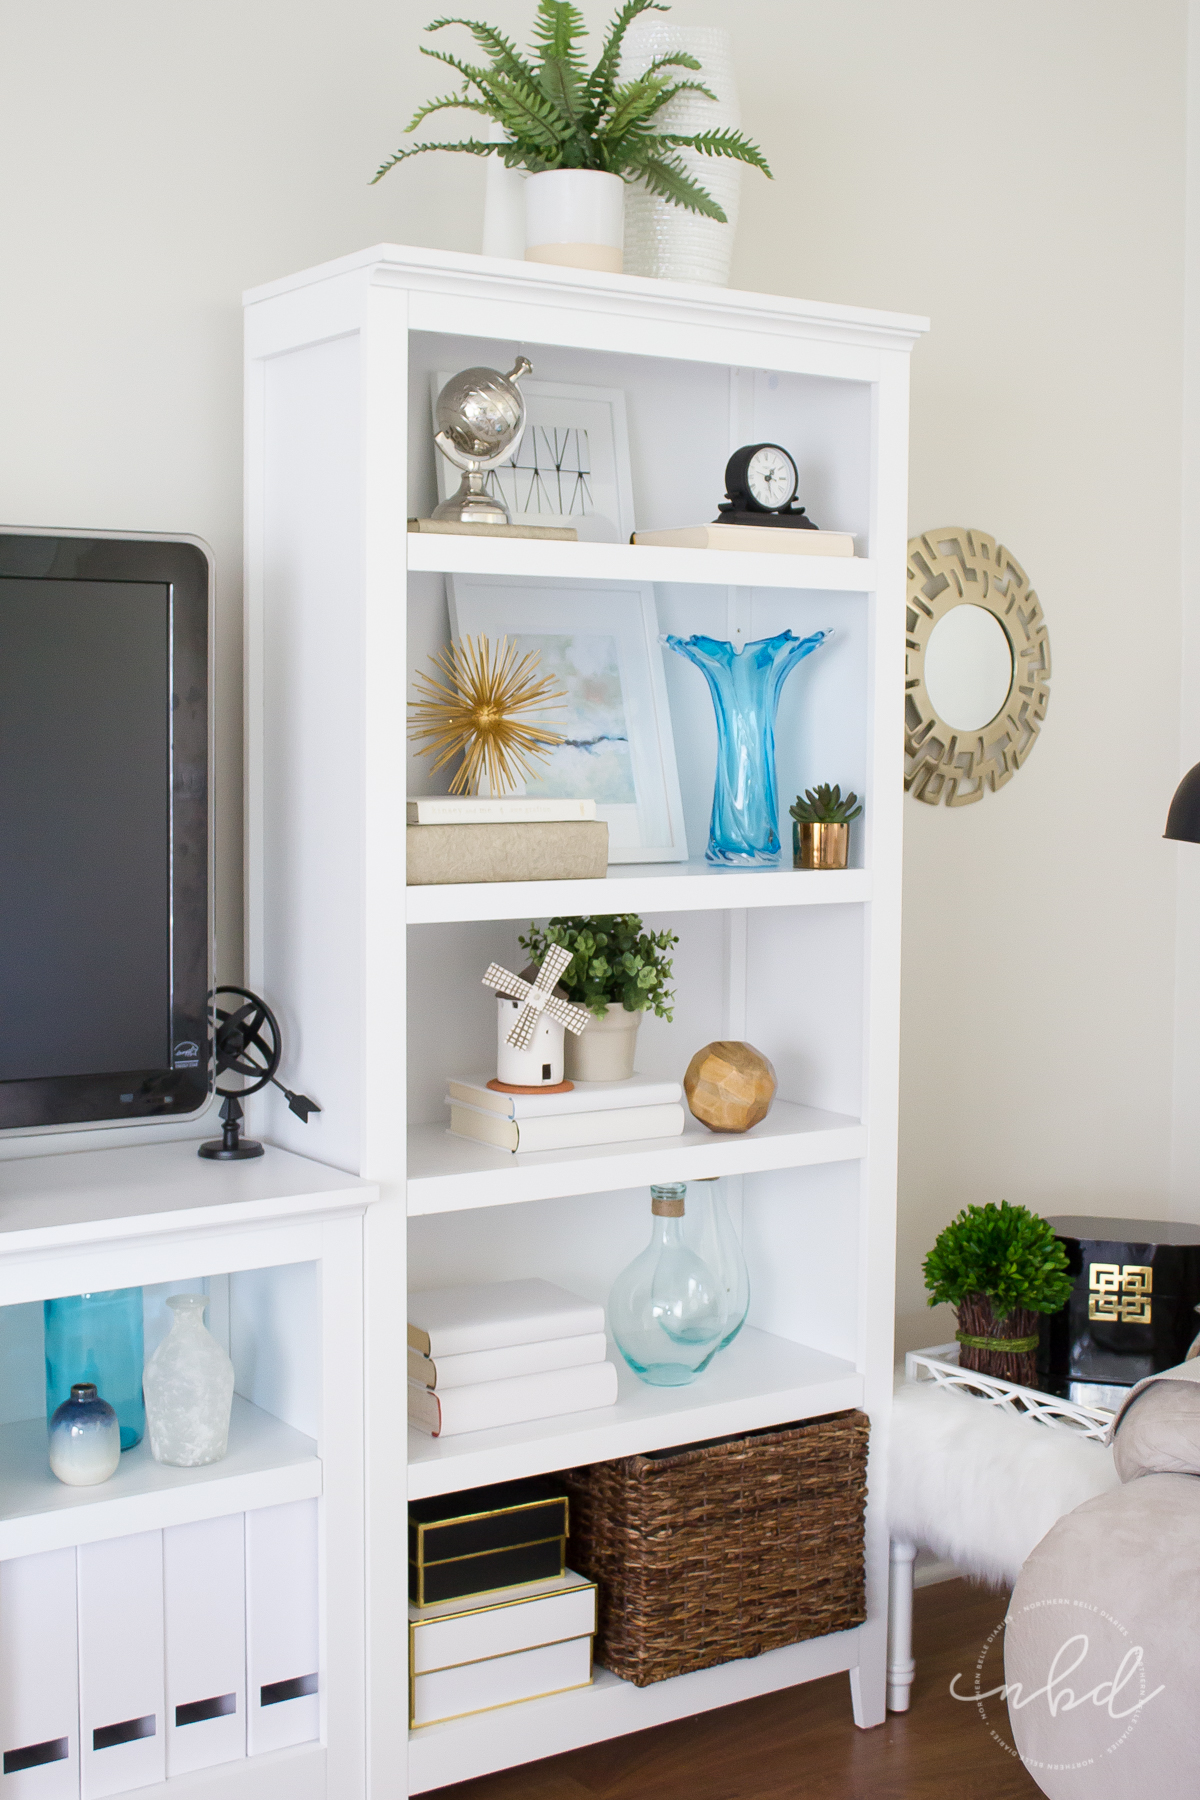 Blue and white bookshelf decorating after styling method by The Decor Fix